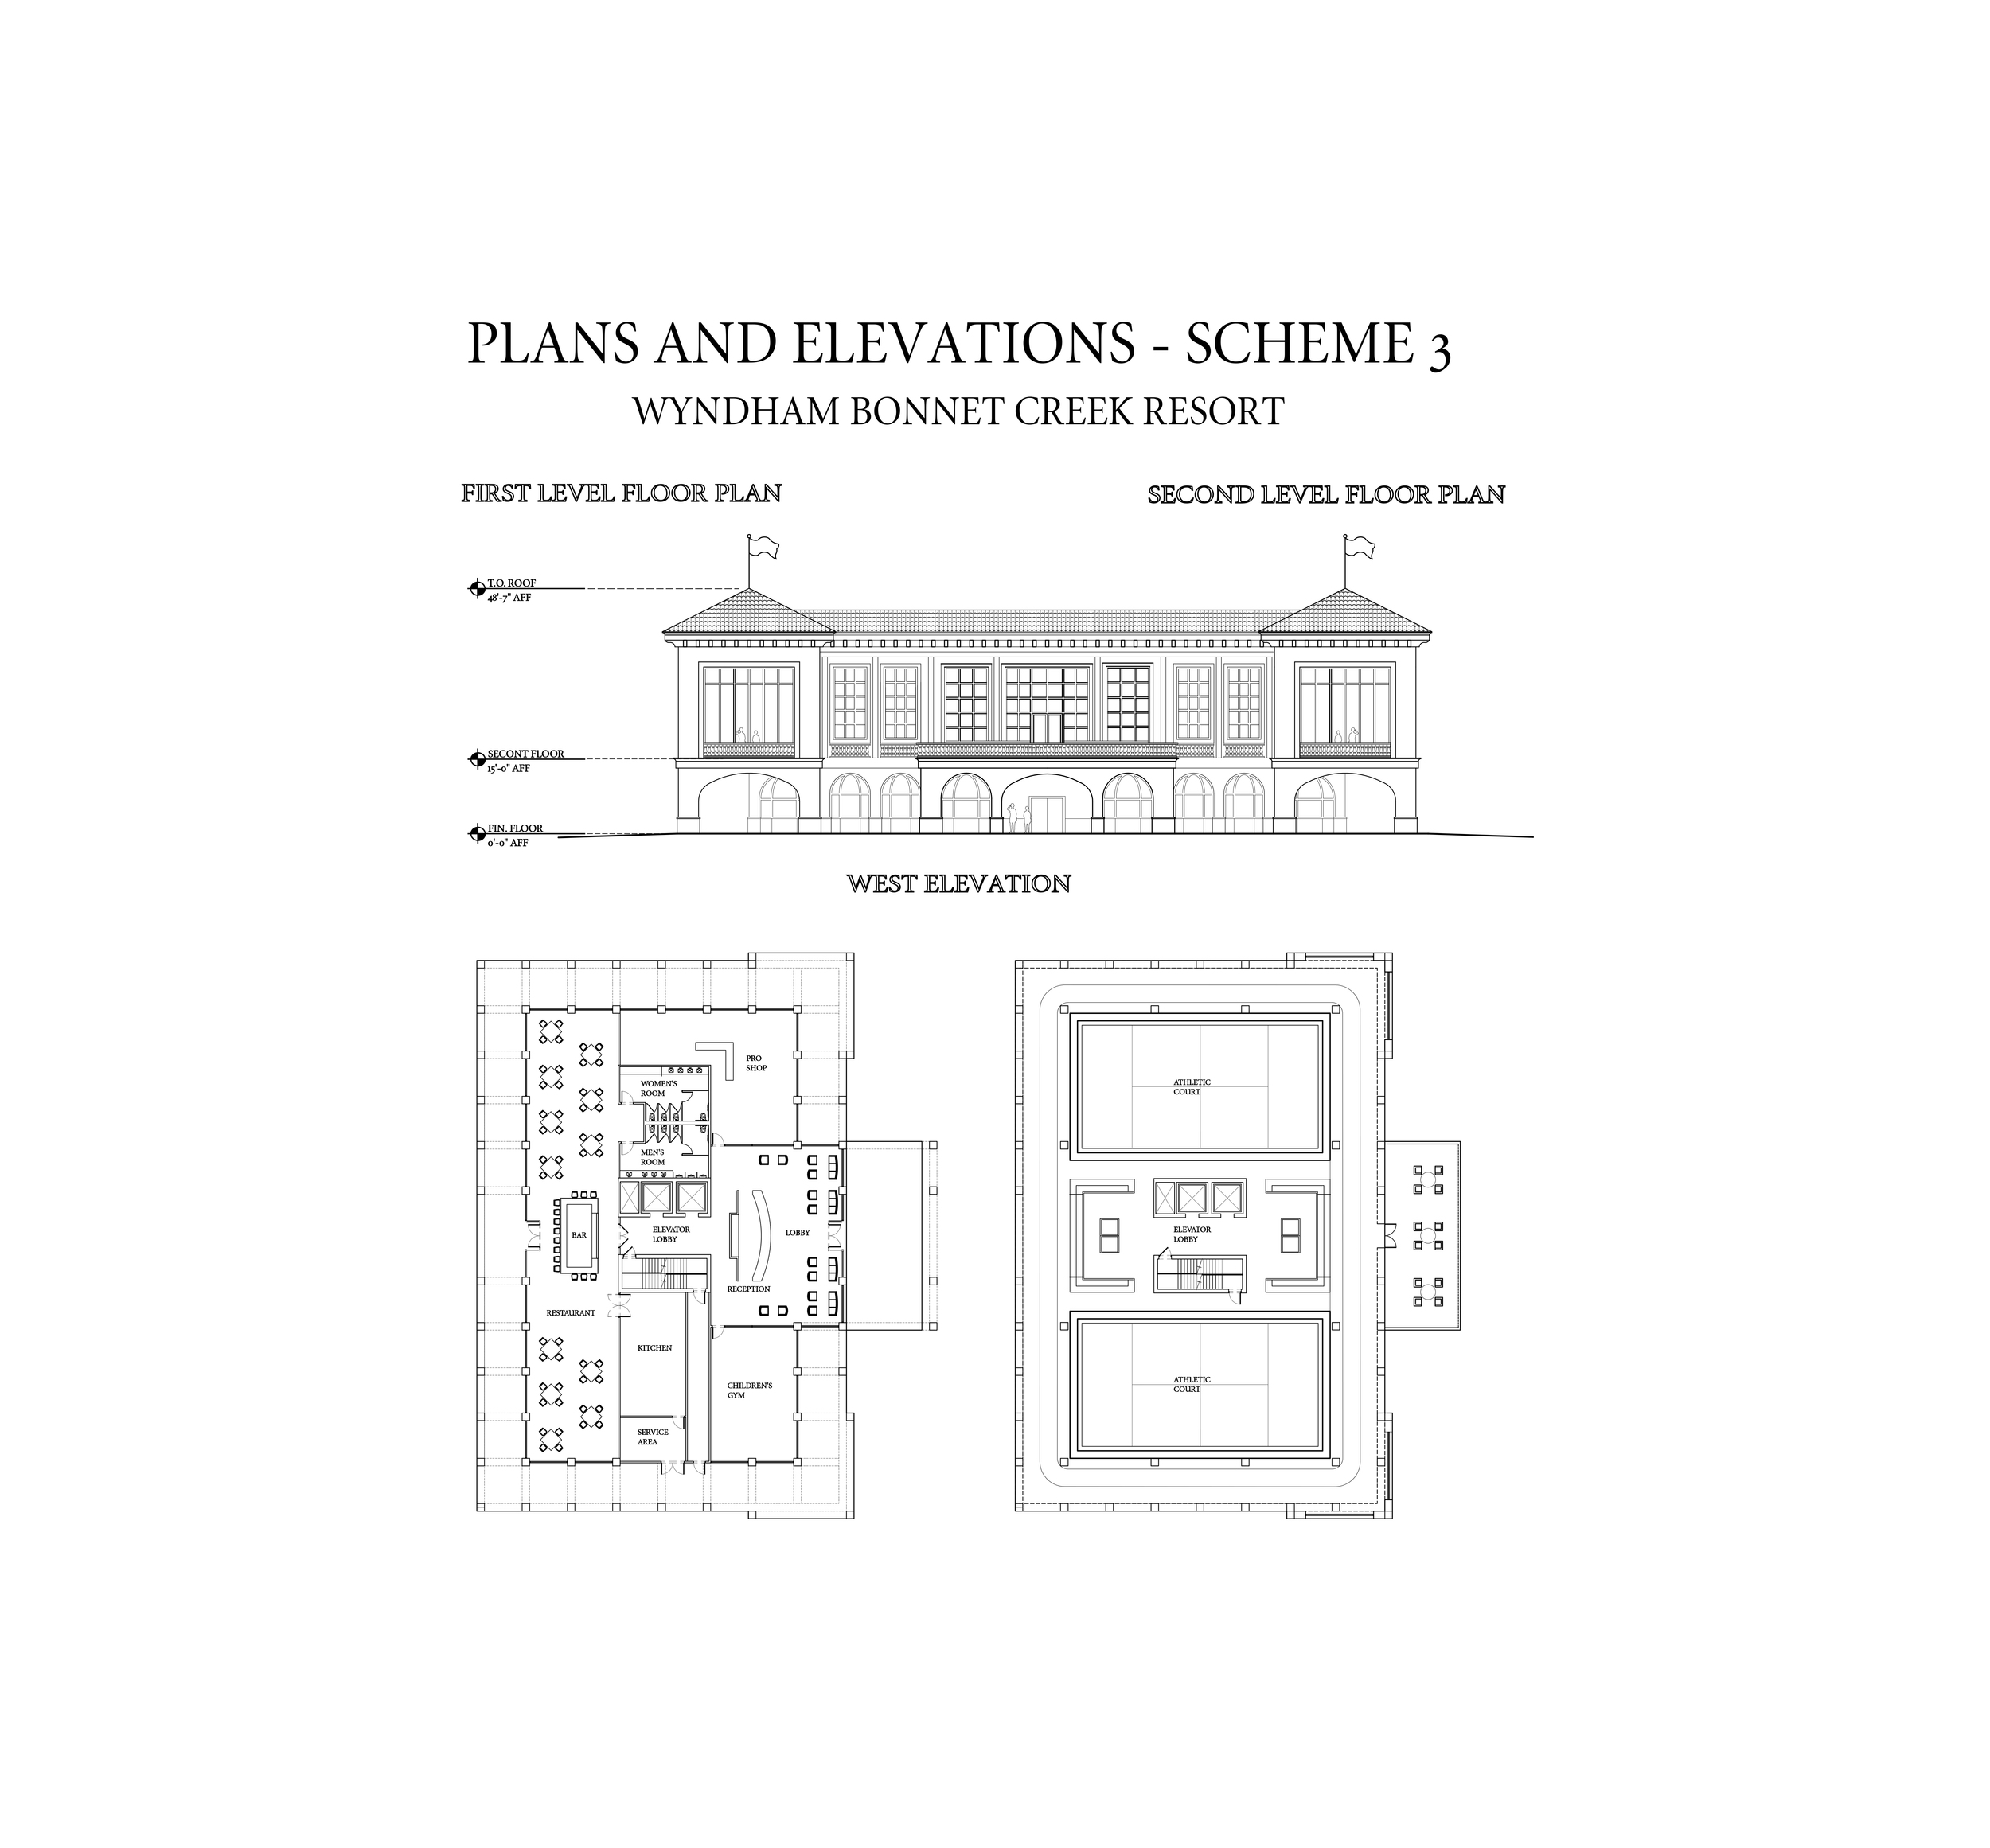 elevations and floor plans.jpg